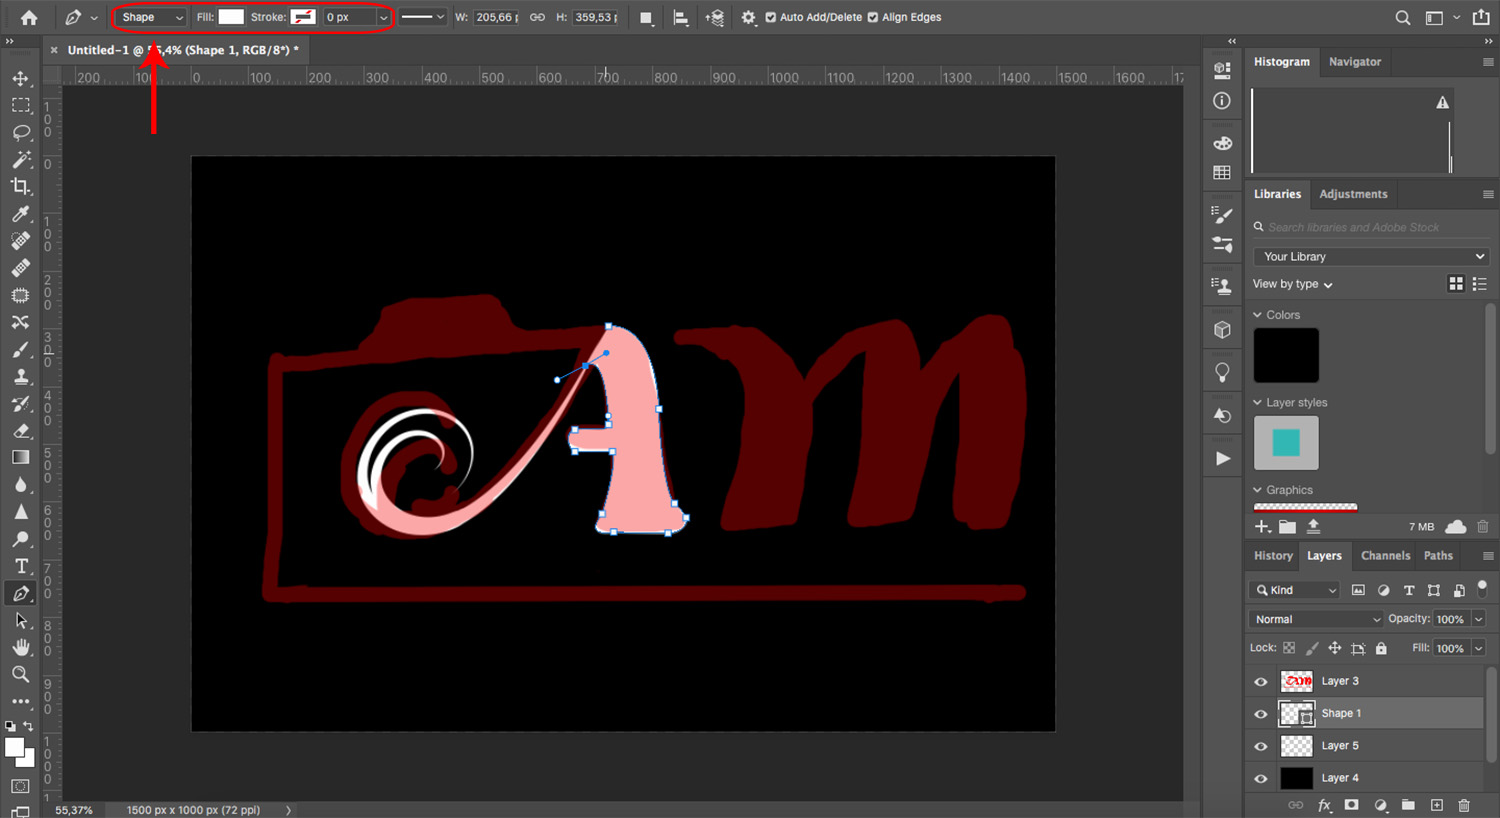 Create shapes using the Pen tool in Photoshop